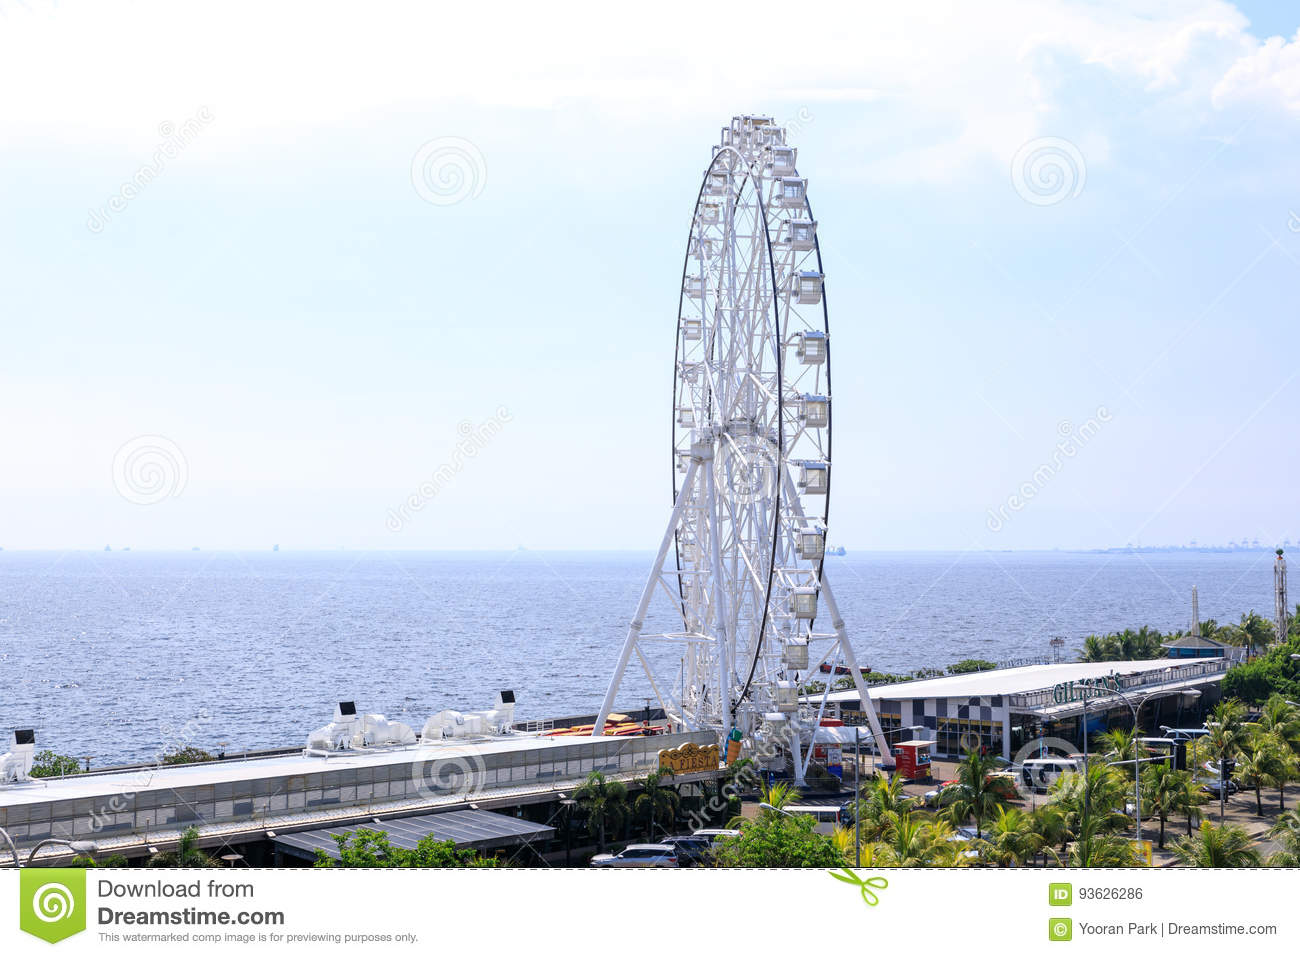 May 31, 2017 Ferris wheel at Mall of Asia in Manila. The ferris